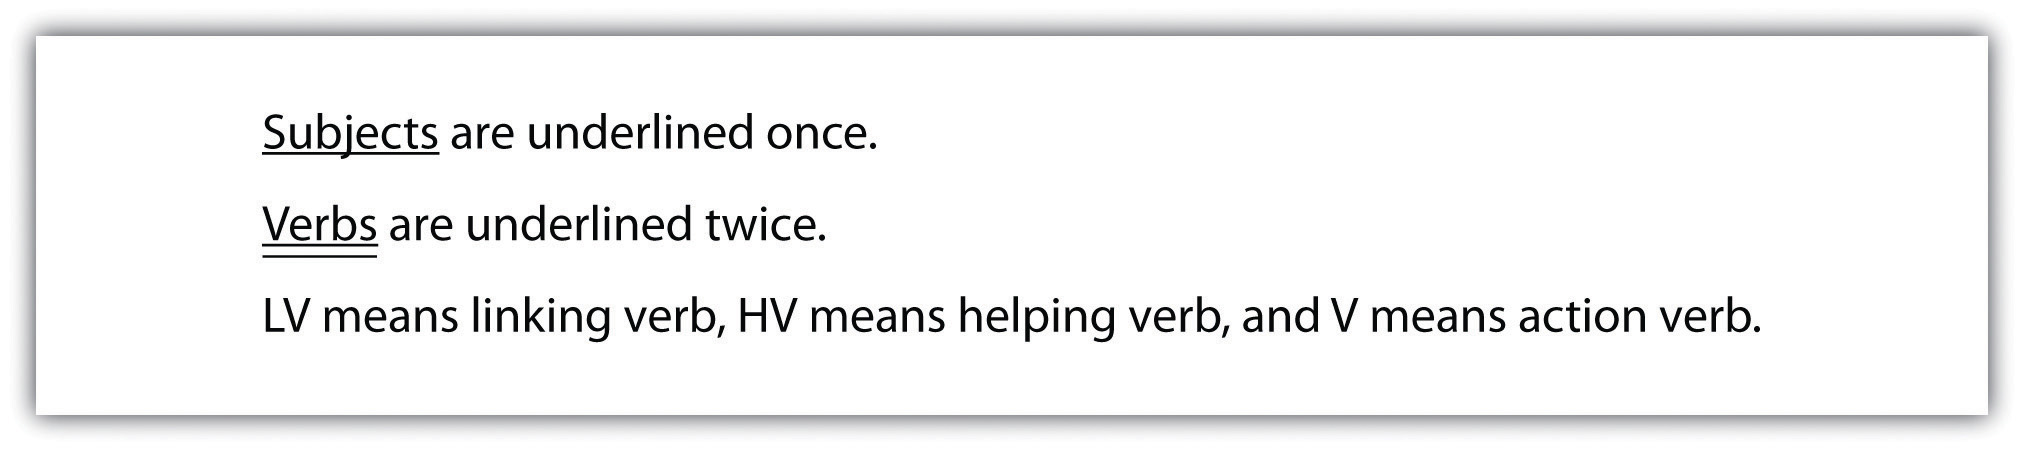 lesson parts of sentence subjects are underlined once verbs are underlined twice lv means linking verb hv